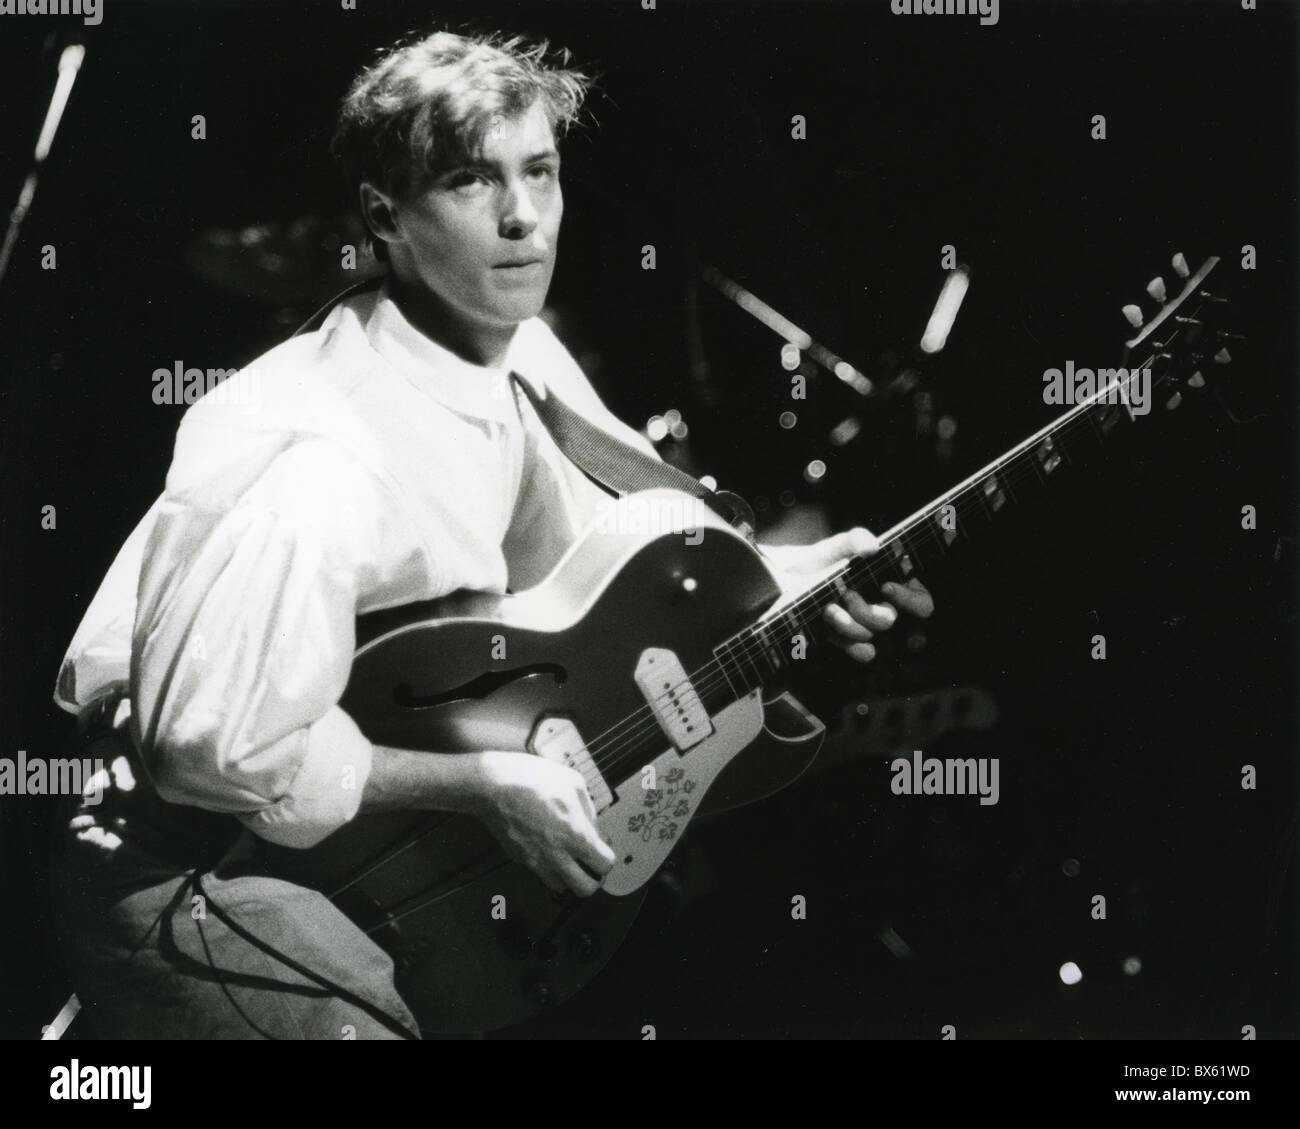 AZTEC CAMERA UK pop group with Roddy Frame about 1985. Photo Stephen ...